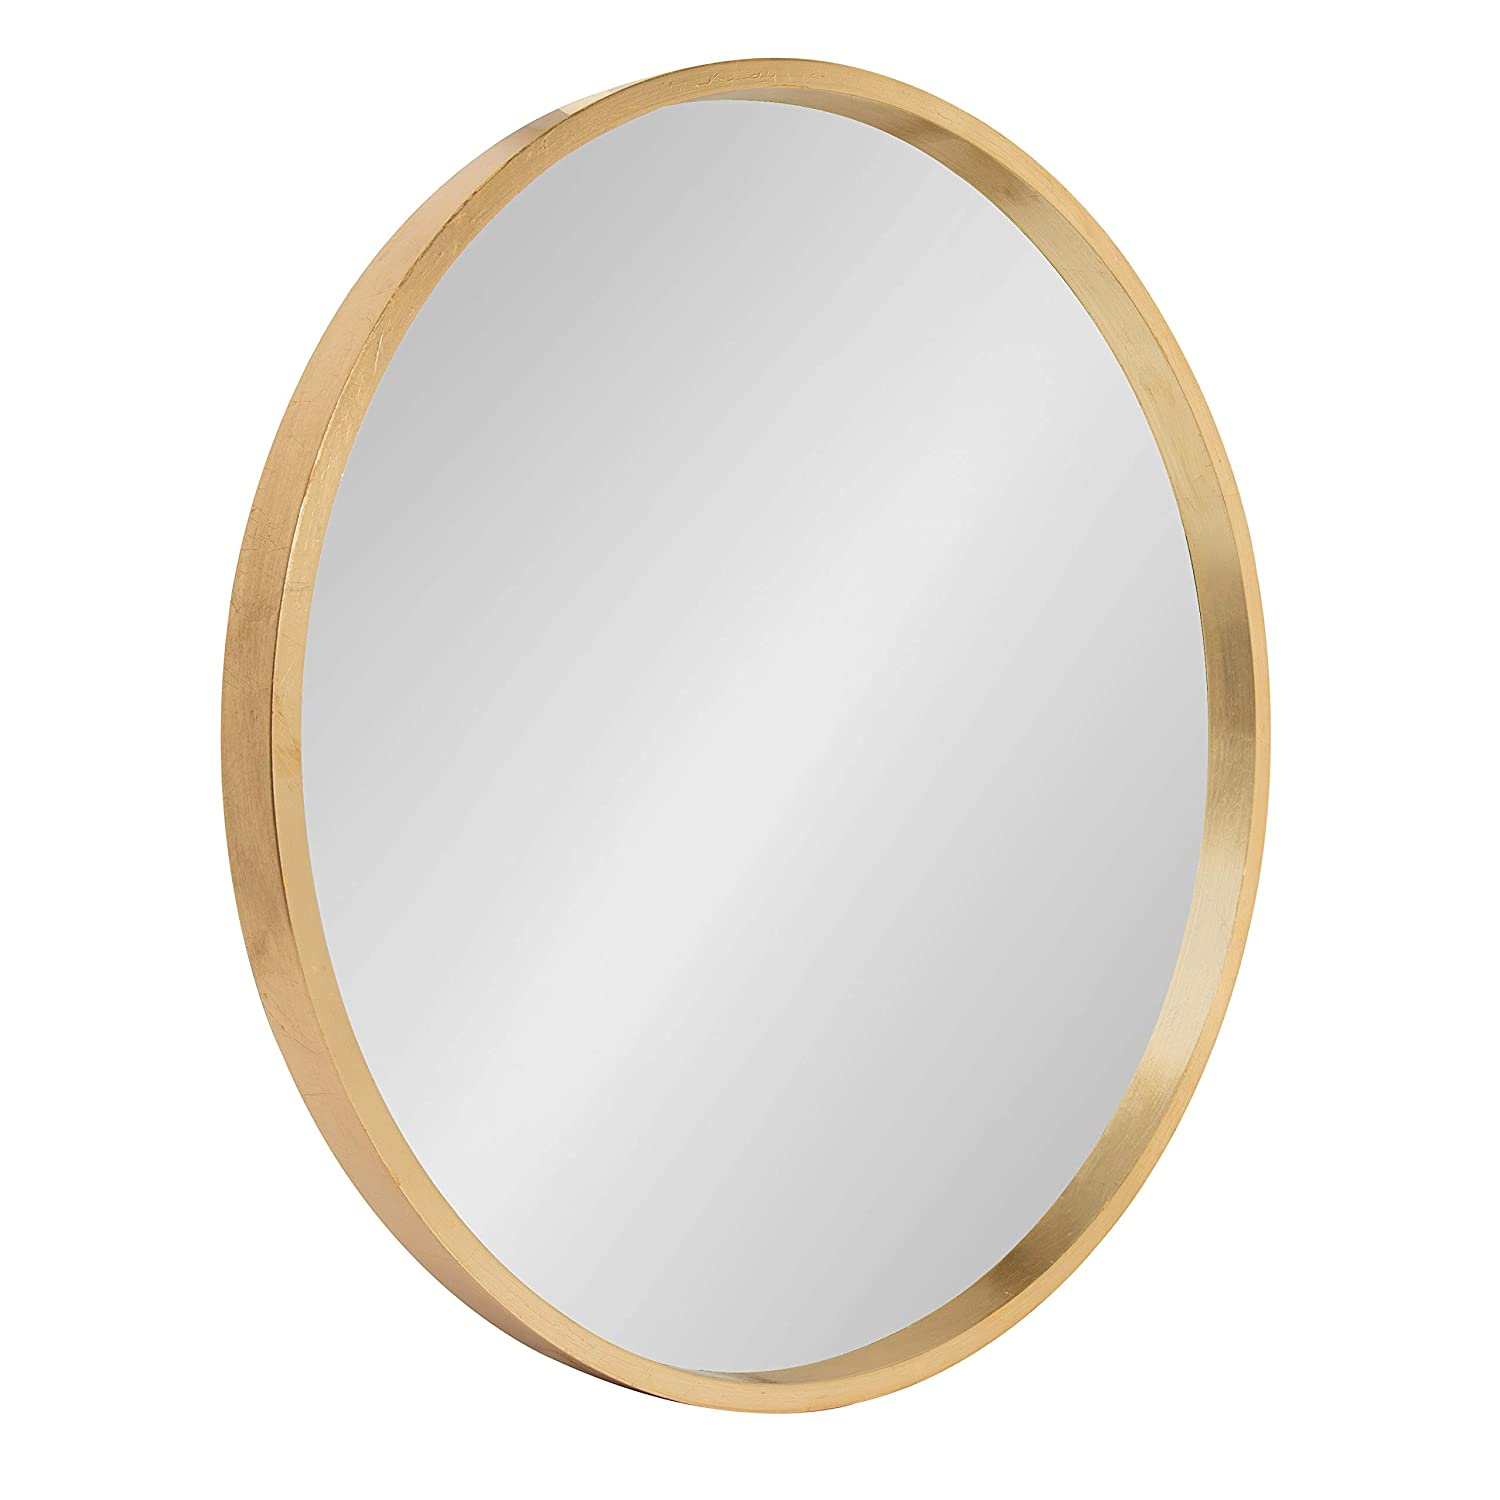 Kate and Laurel Travis Round Wood Accent Wall Mirror, 21.6 Diameter, Gold 21.6 Diameter Uniek 213124